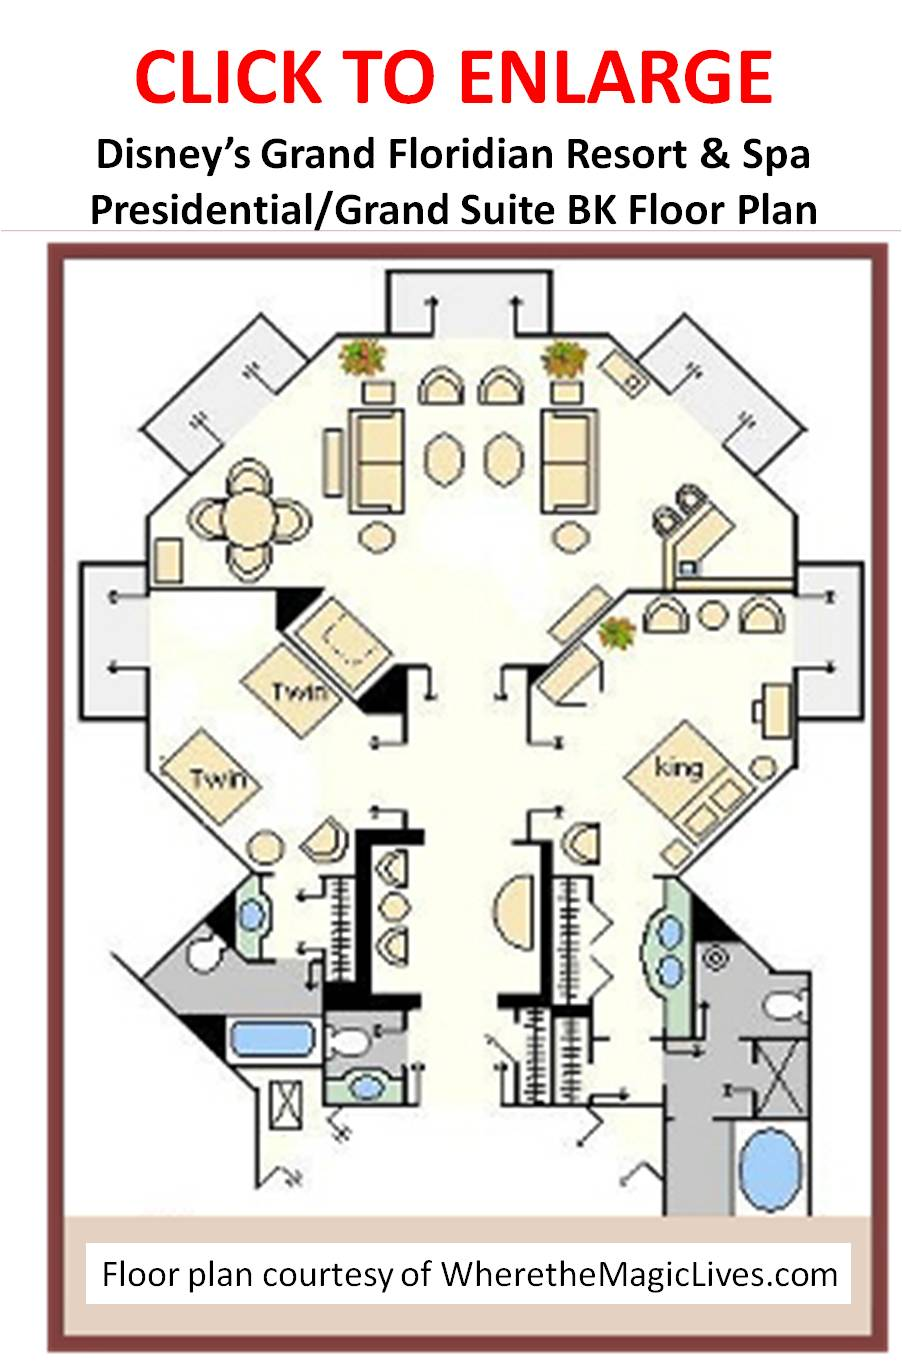 grand floridian floor plan 3 bed trend home design and decor disney grand floridian villa floor plan free home design